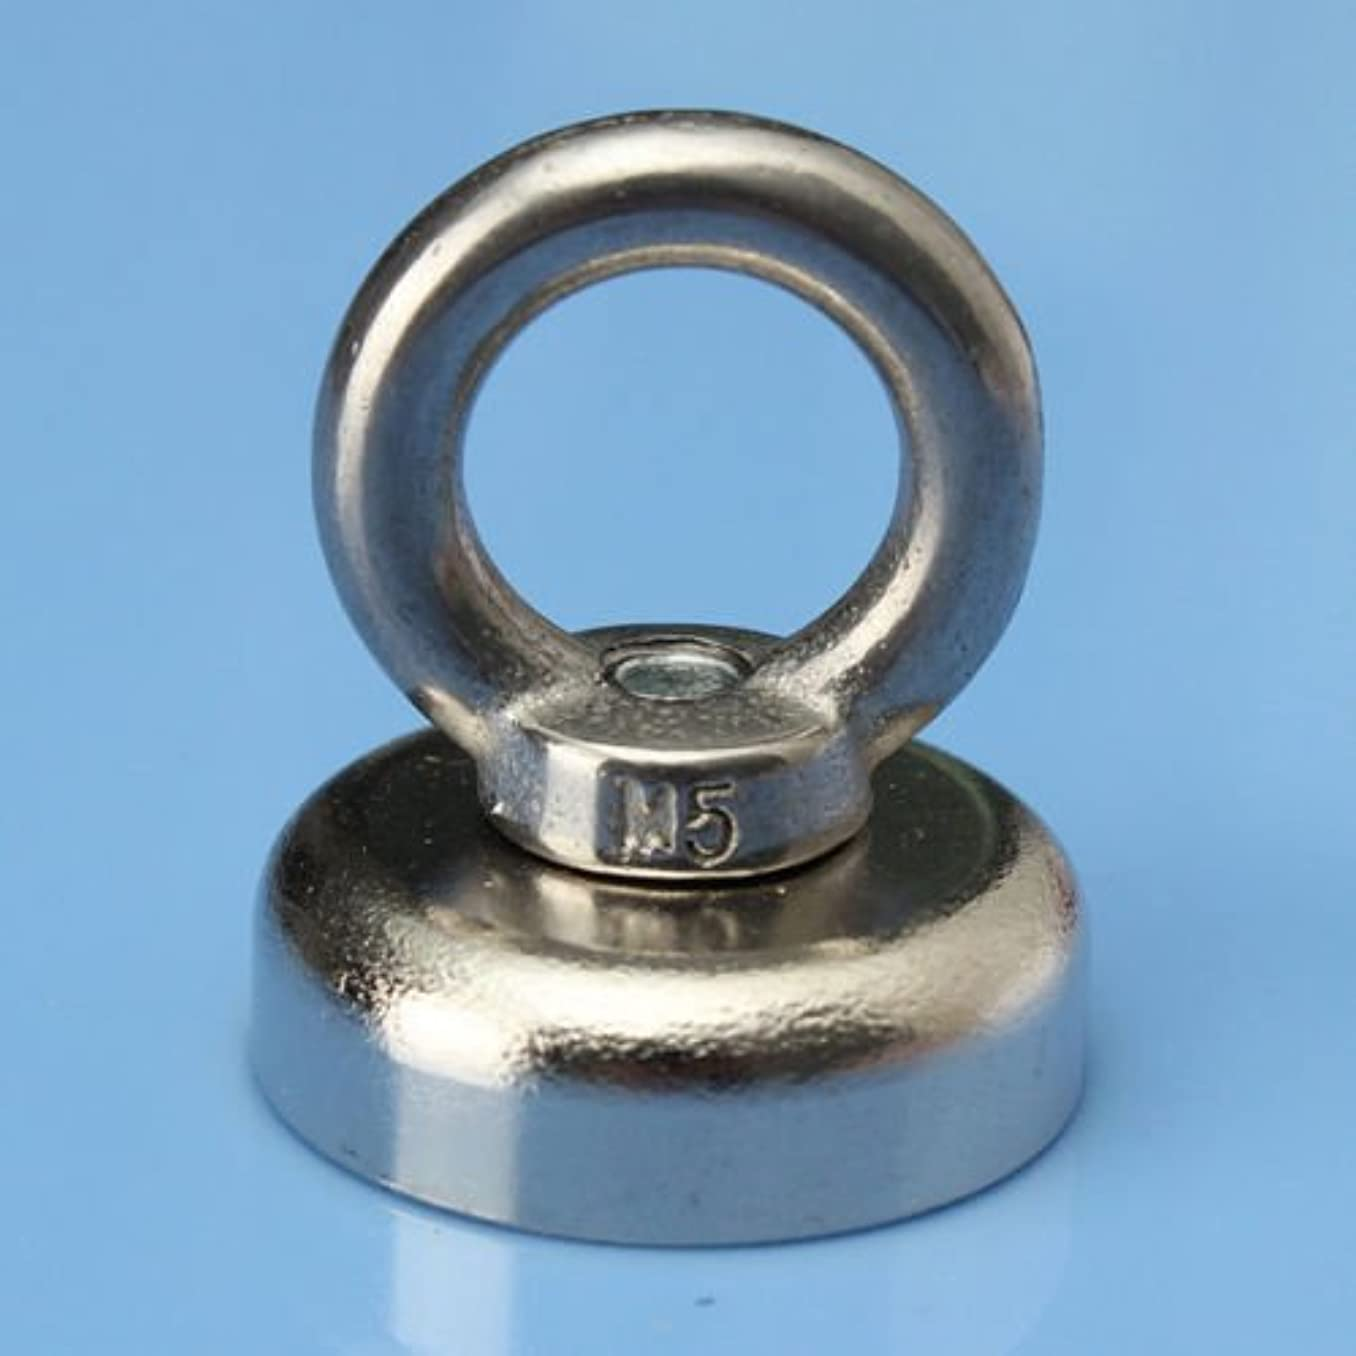 AOMAG Neodymium Hook Magnets Strong Neodymium Eyebolt Circular Rings Magnet - Holds up to 30 Pounds